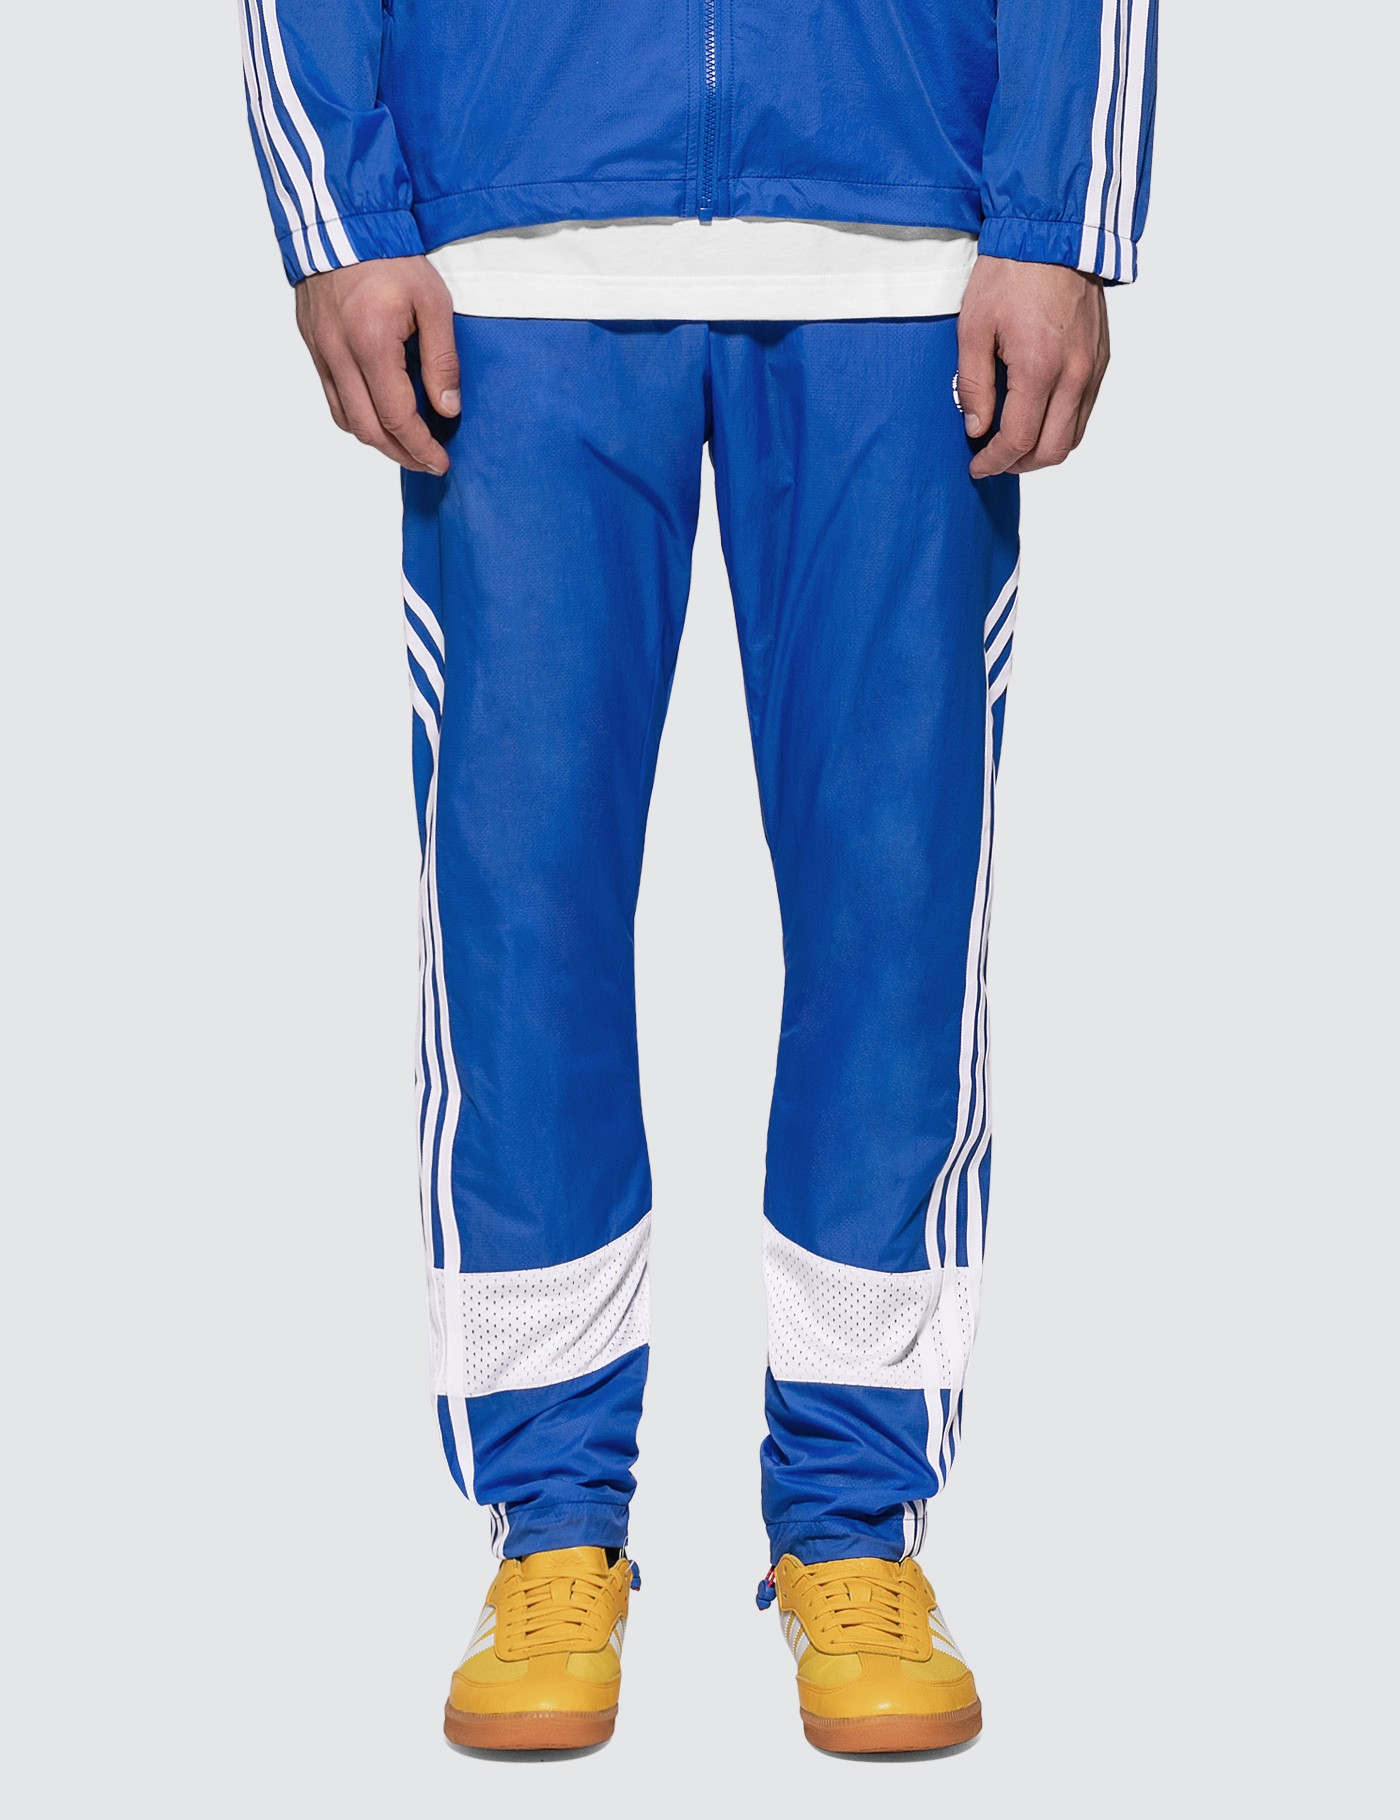 Adidas Originals Oyster Holdings x Adidas Track Pants